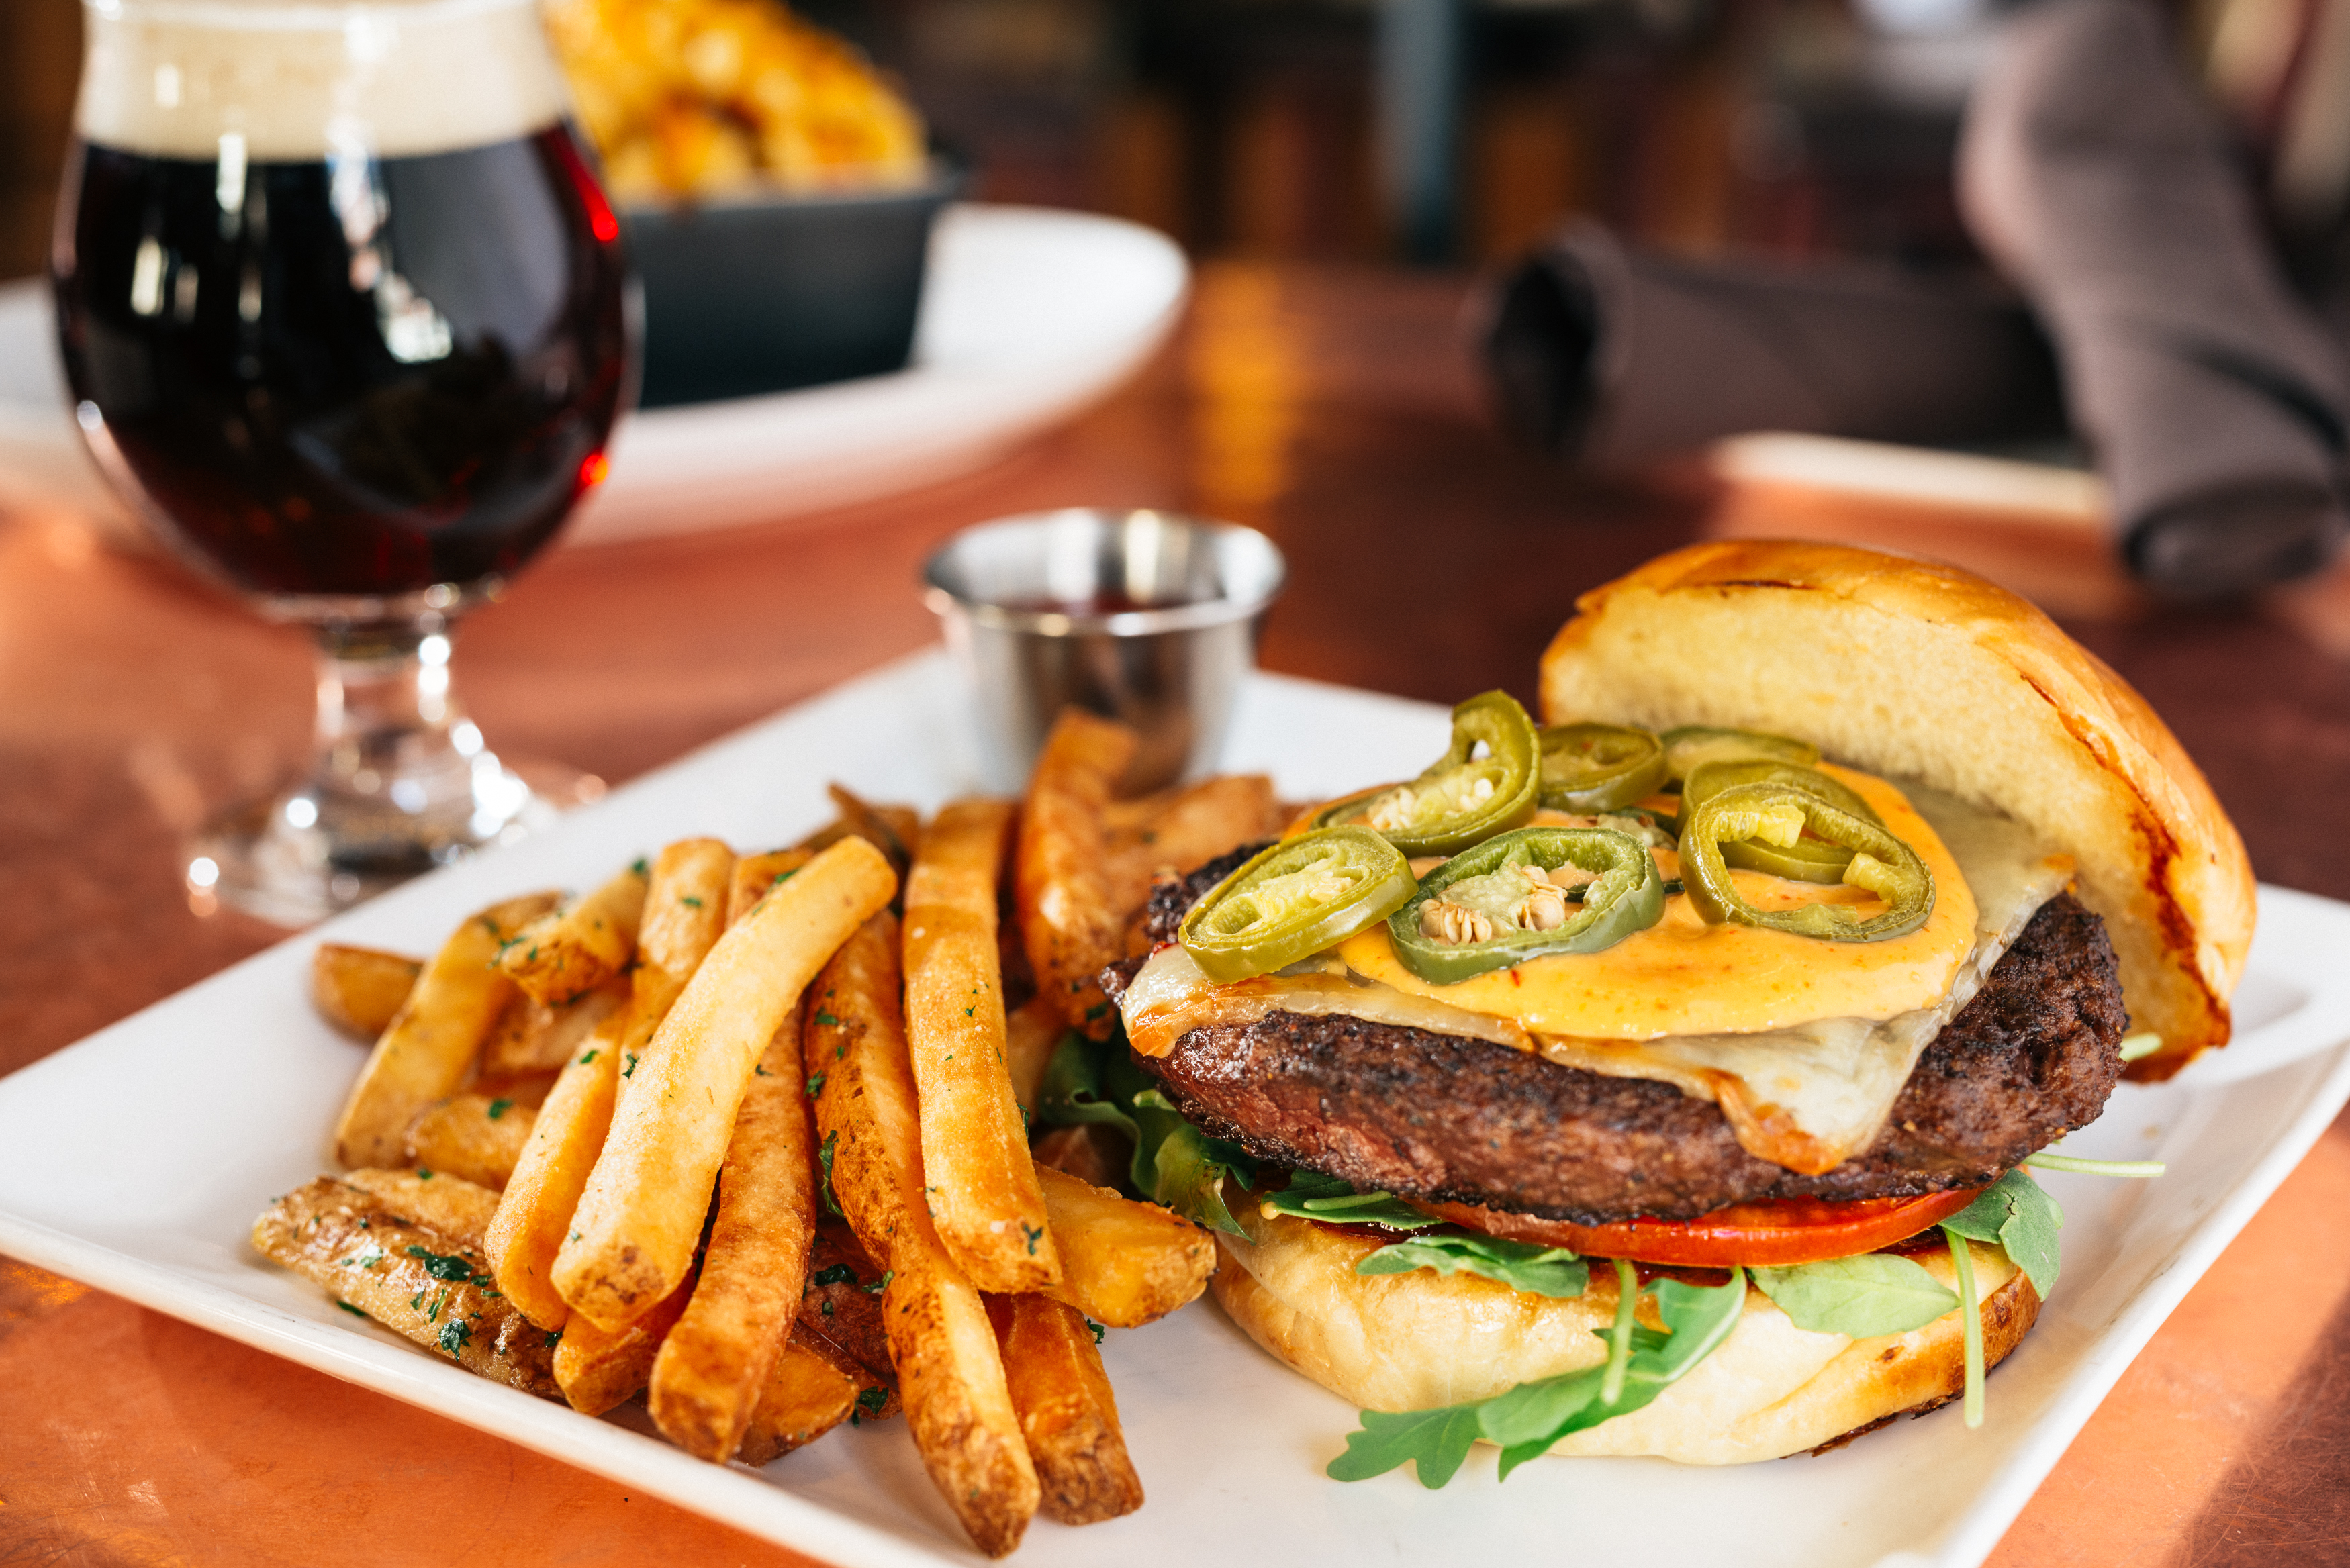 City Works Eatery & Pour House Celebrates NBA Playoffs With New Menu Items - MickeyBlog.com